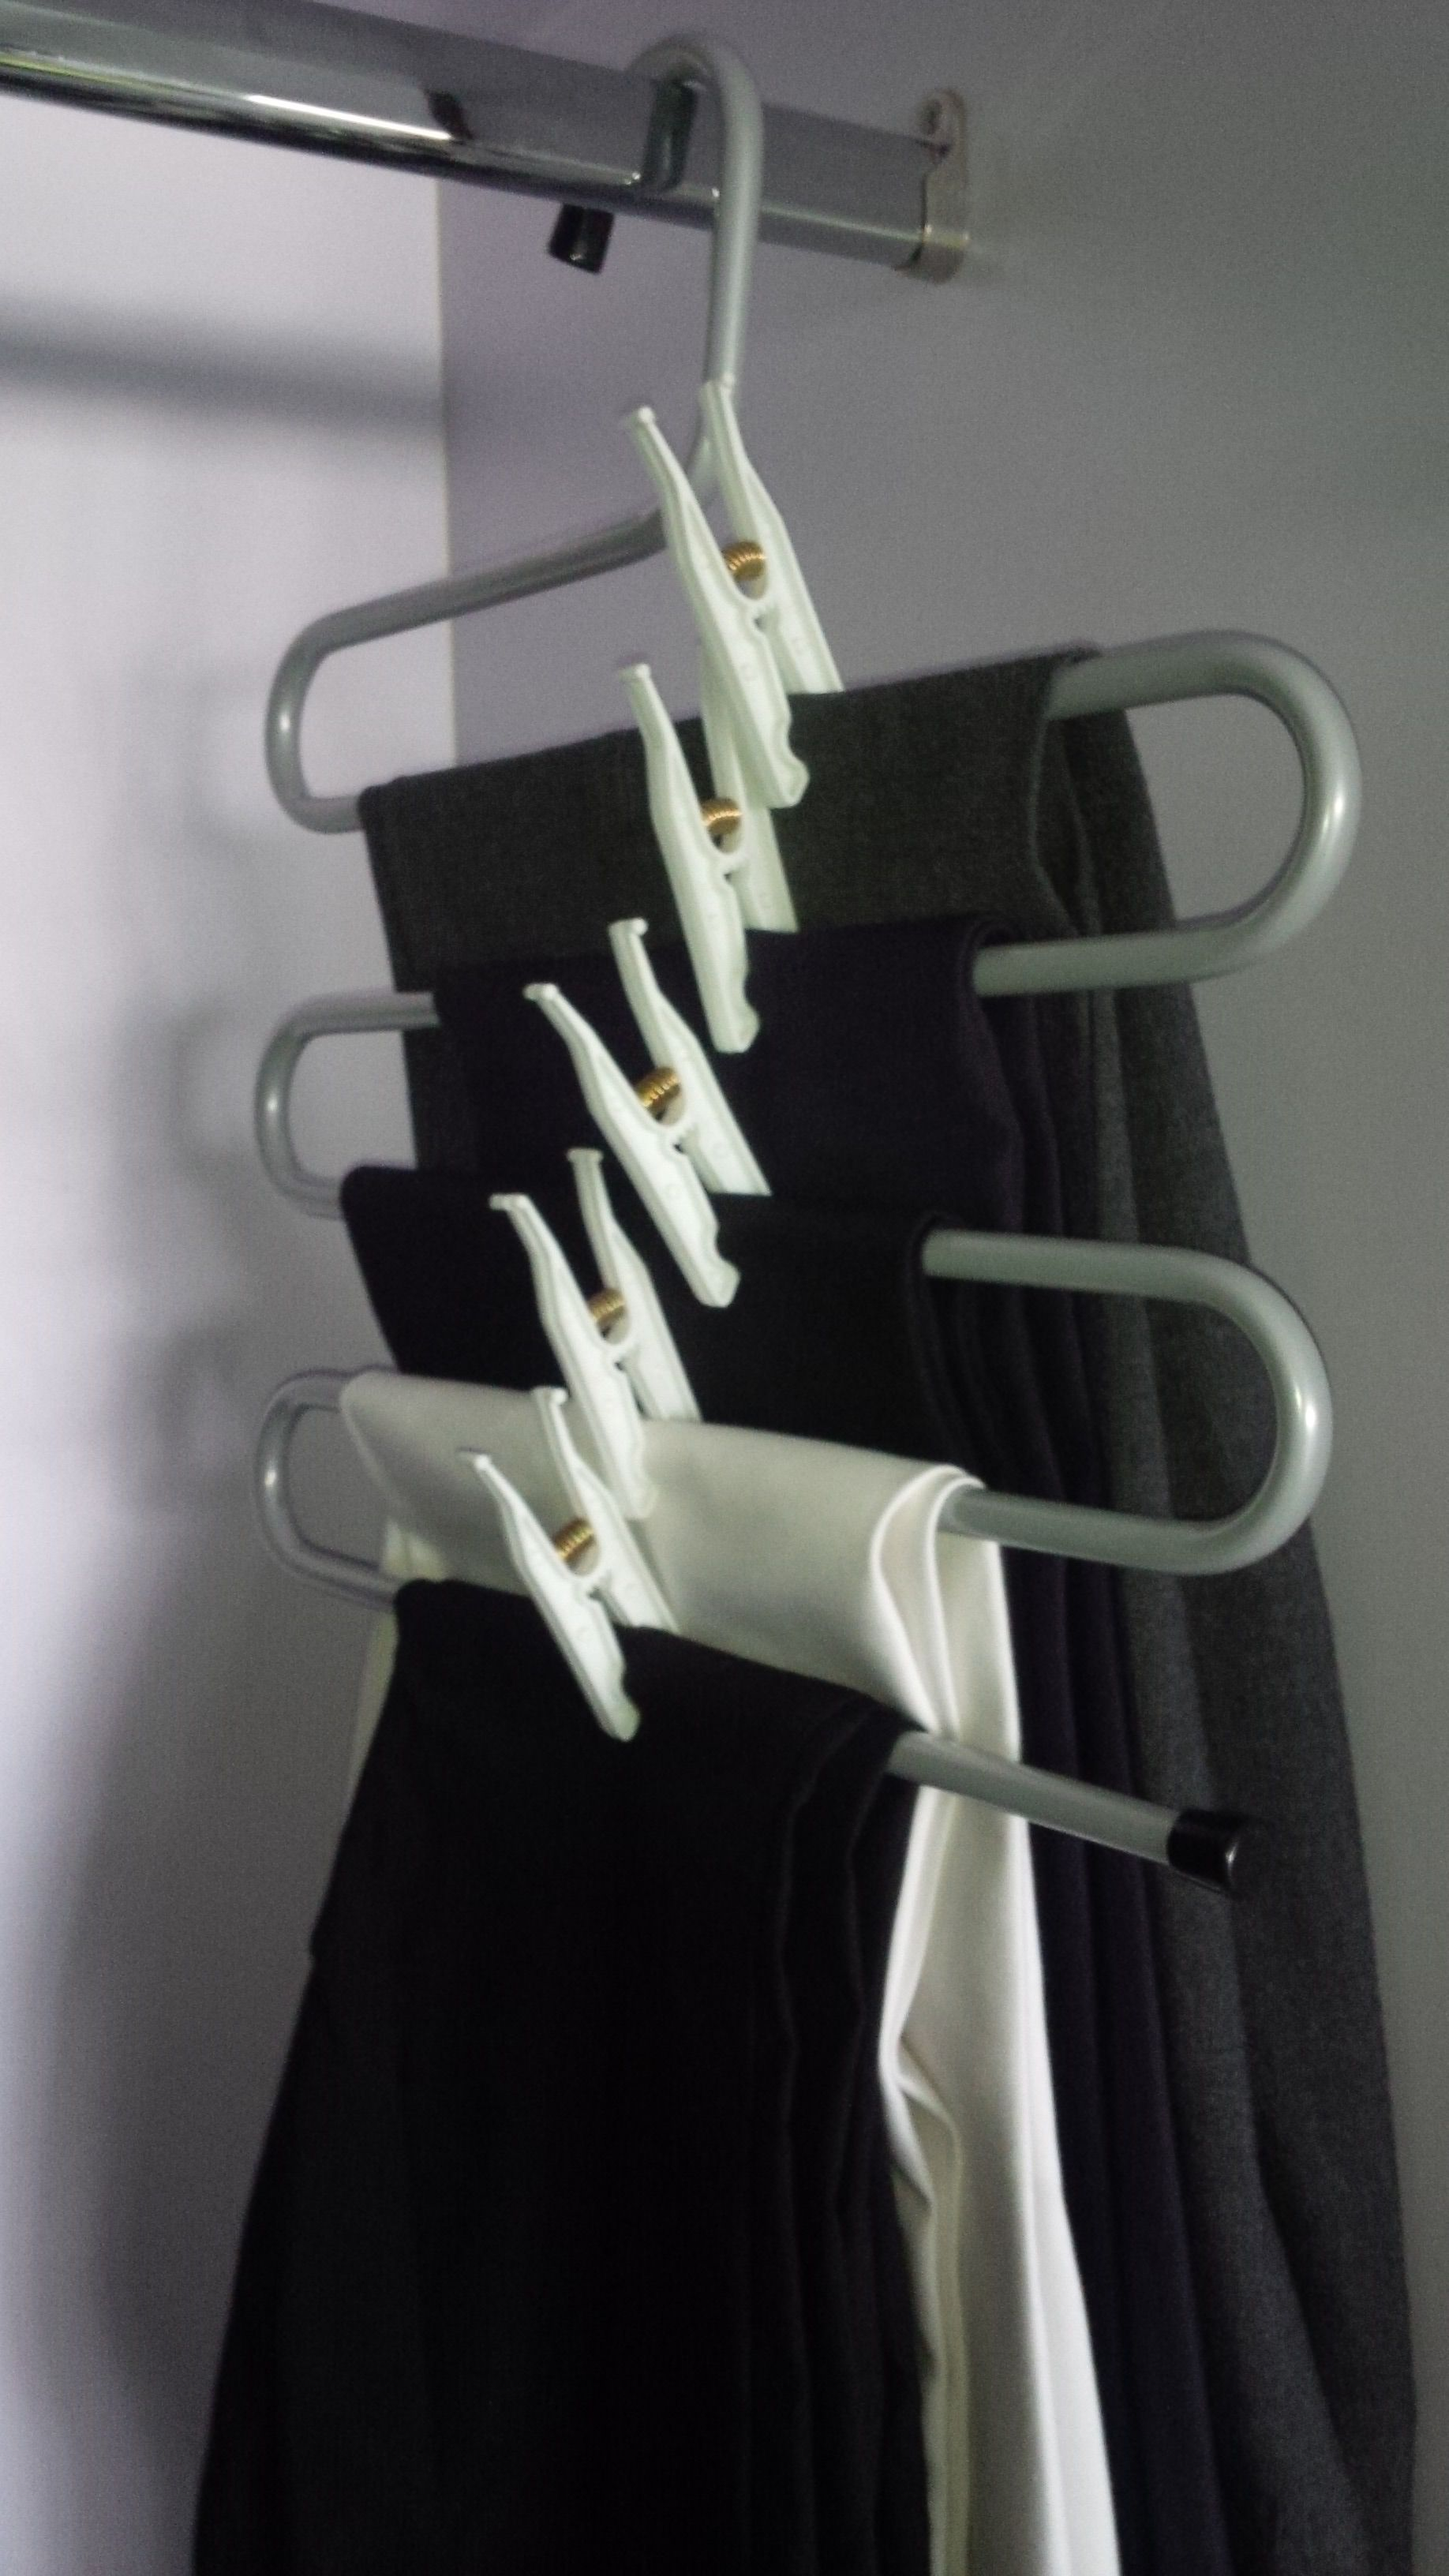 Ikea Brallis Clothes Hanger Useful Tip Hack To Improve Performance Add A Cl Add B In 2020 Clothes Hanger Hanger Pant Hangers